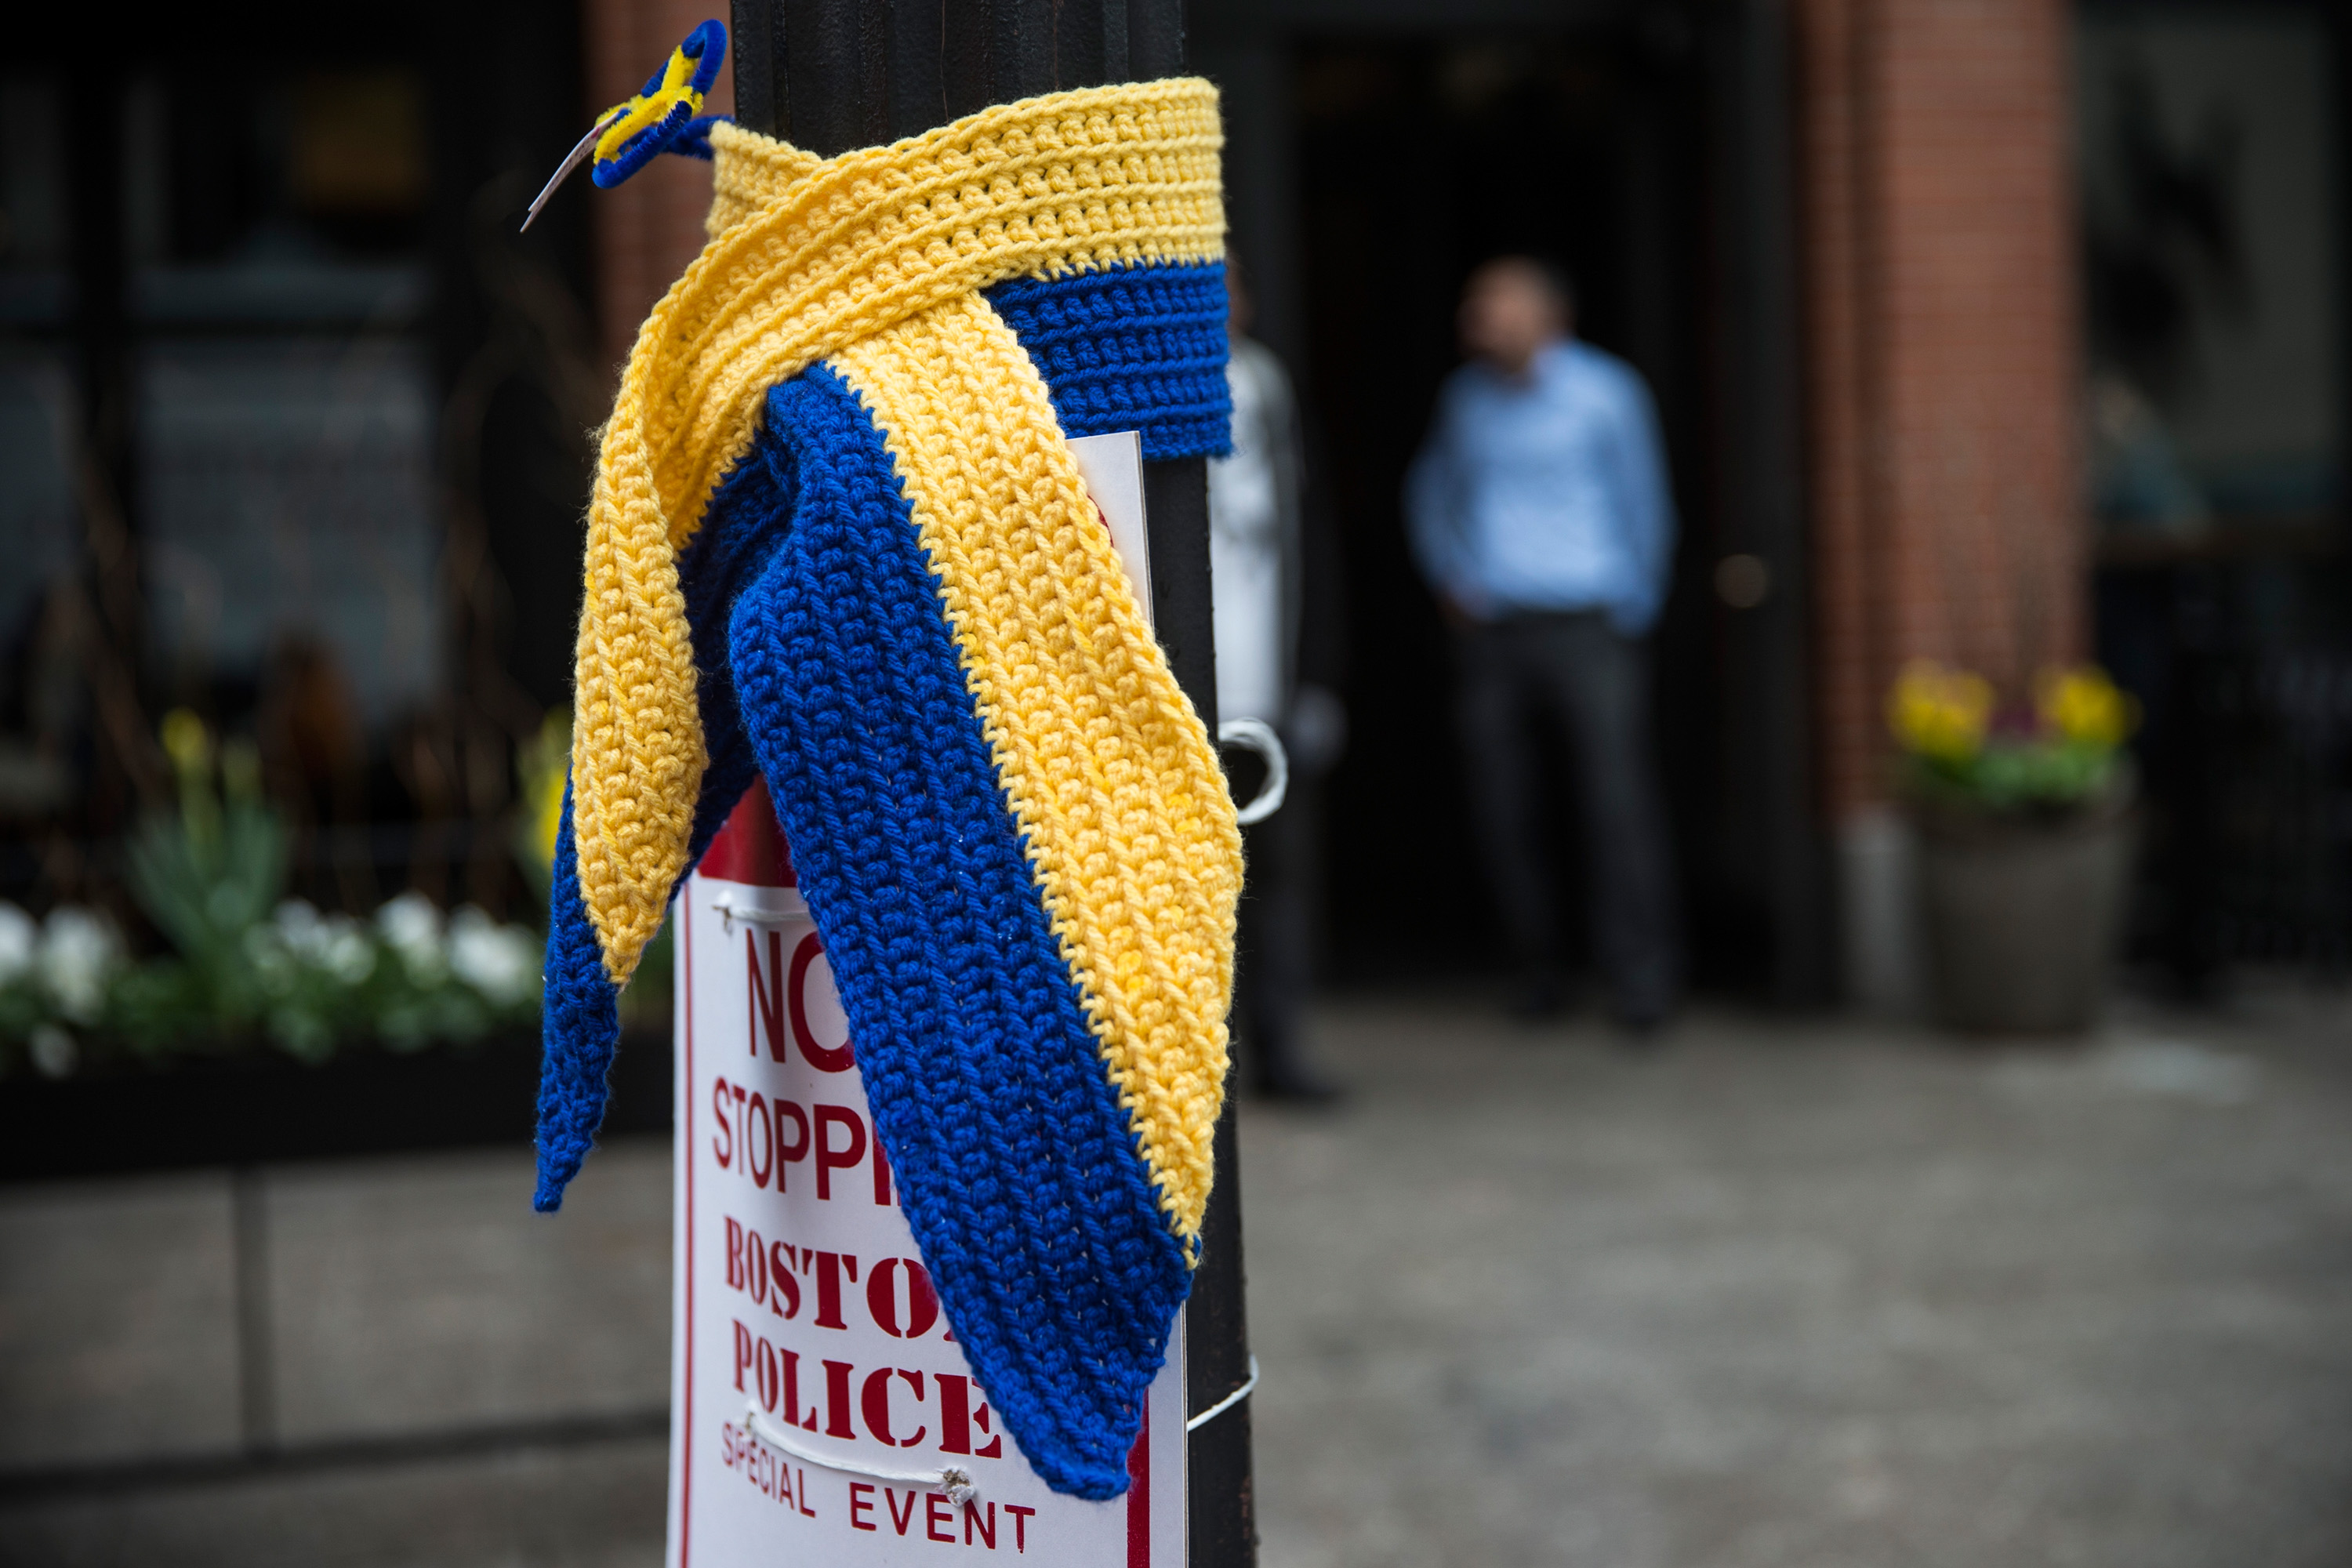 A knitted tribute hangs on a street light along the course of the Boston Marathon on April 15, just one of many tributes being made today in honor of the attack's victims.